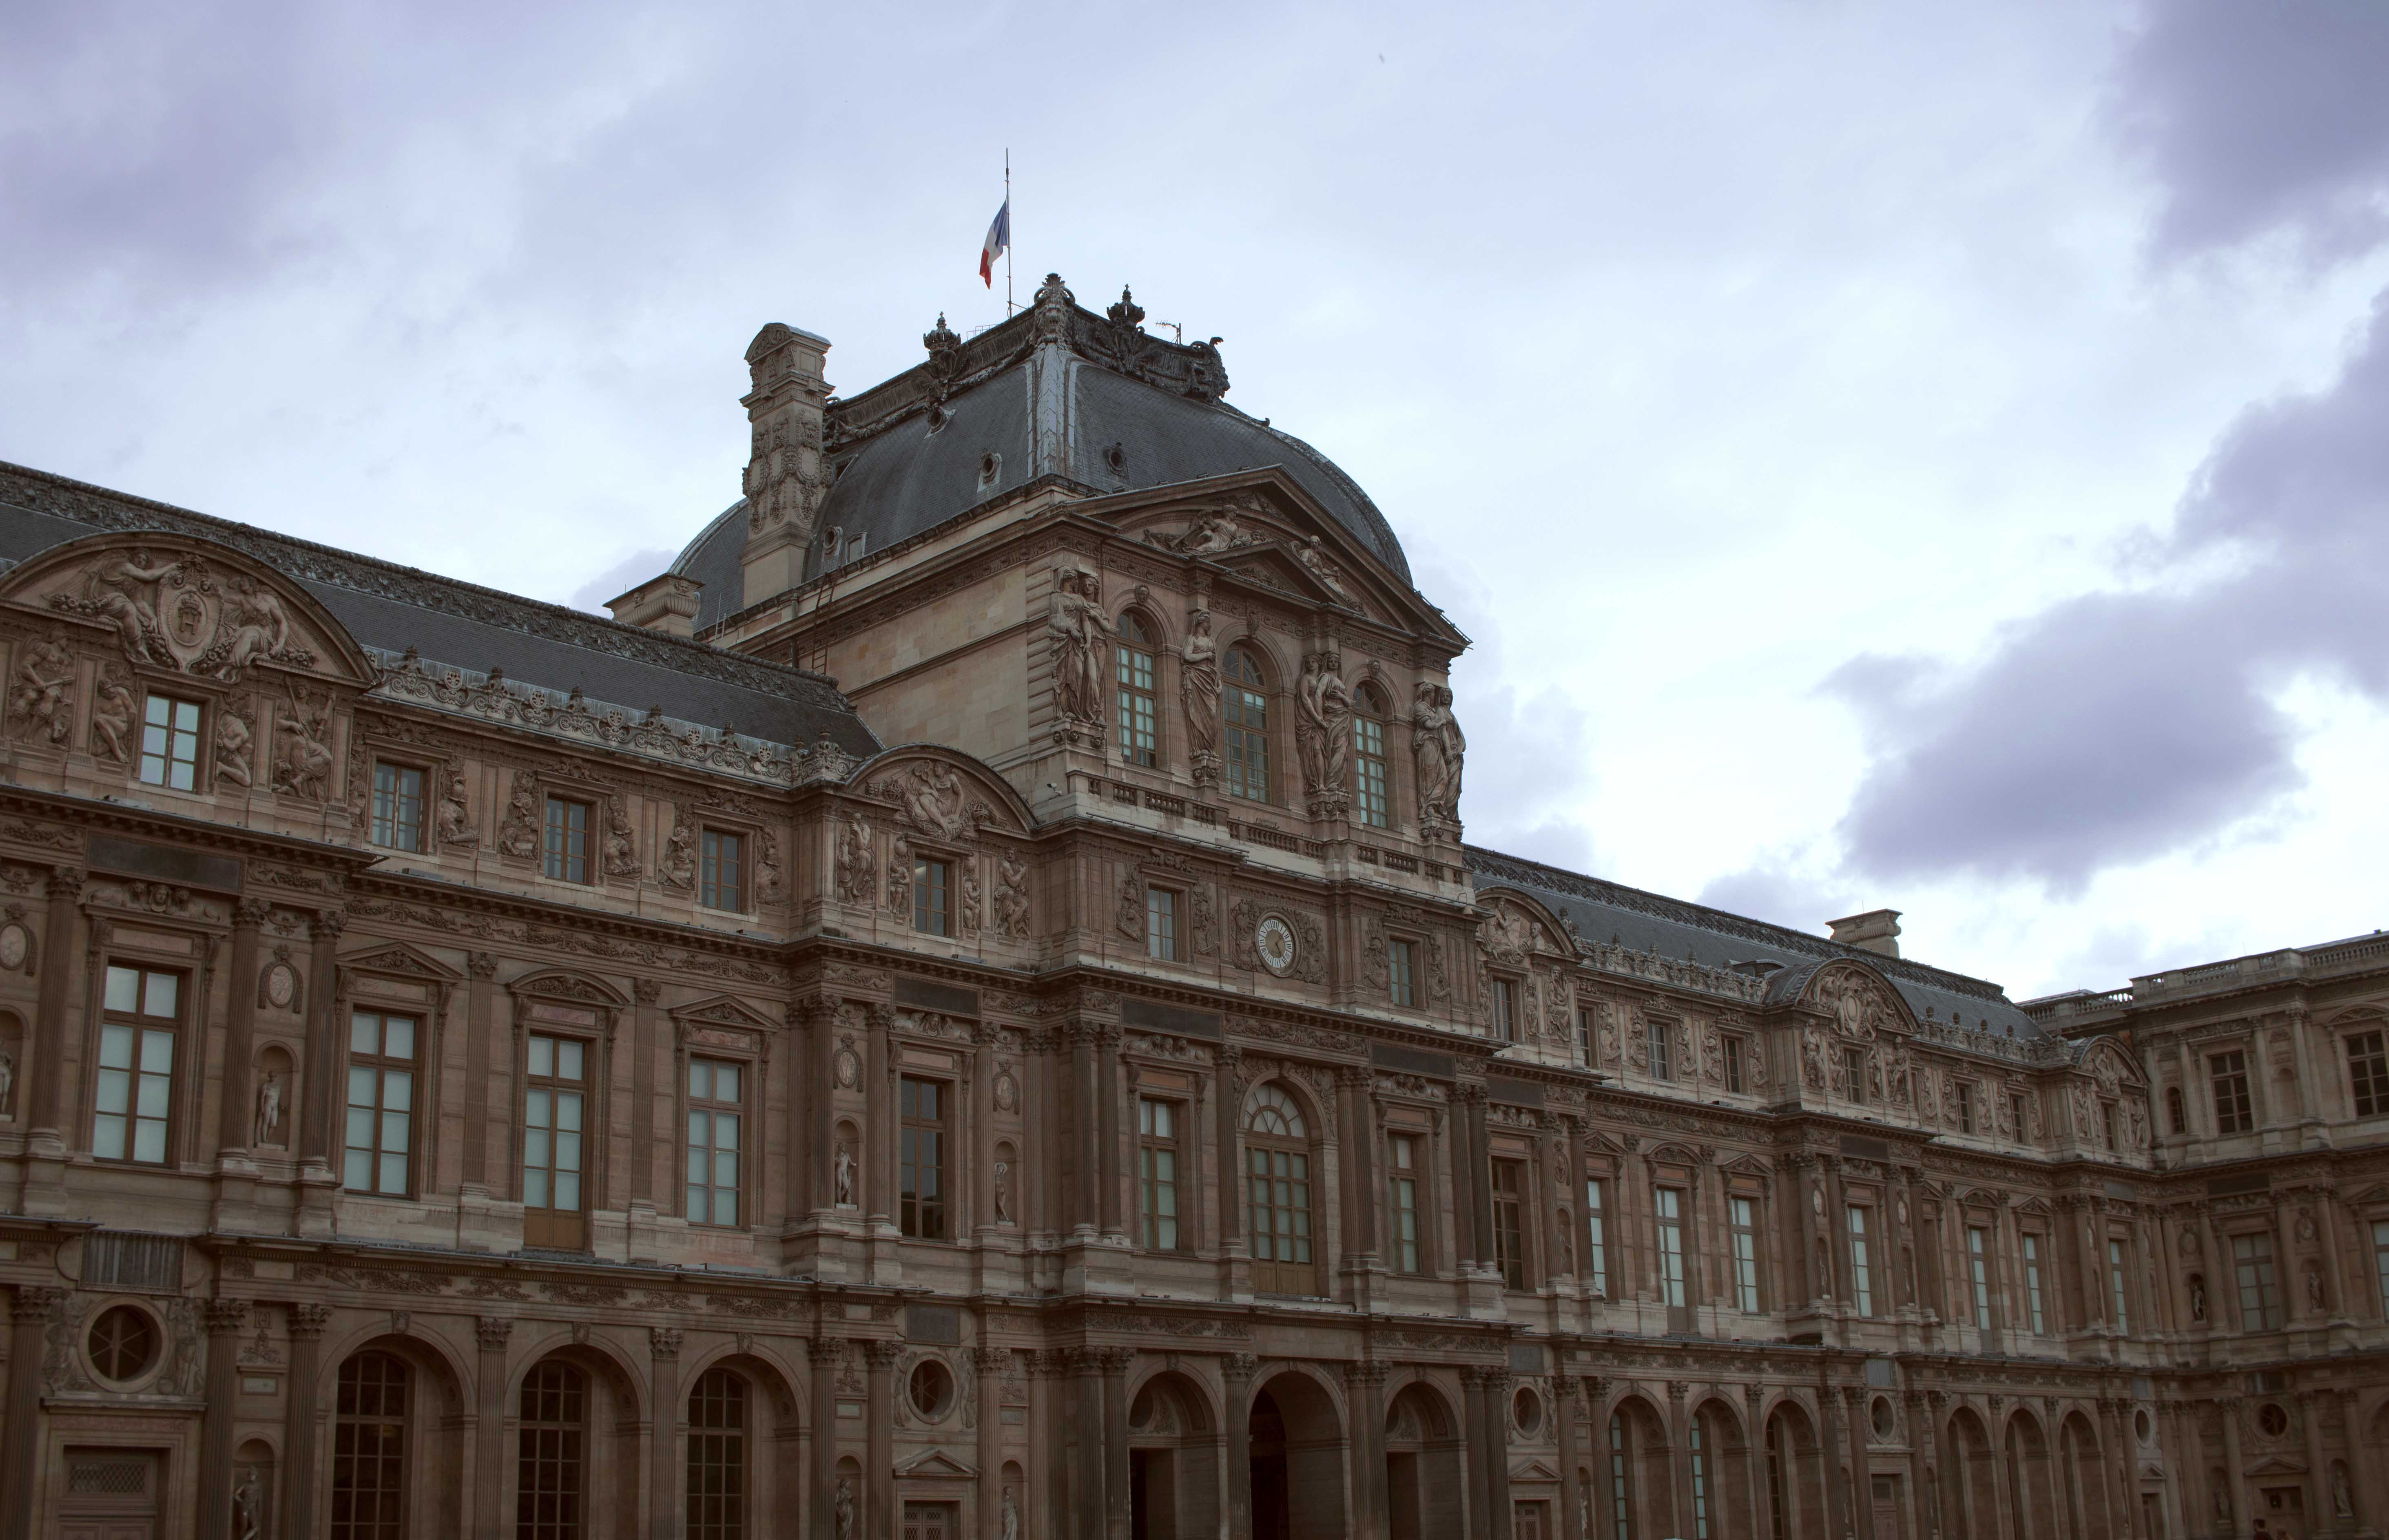 Stunning Buildings at The Louvre